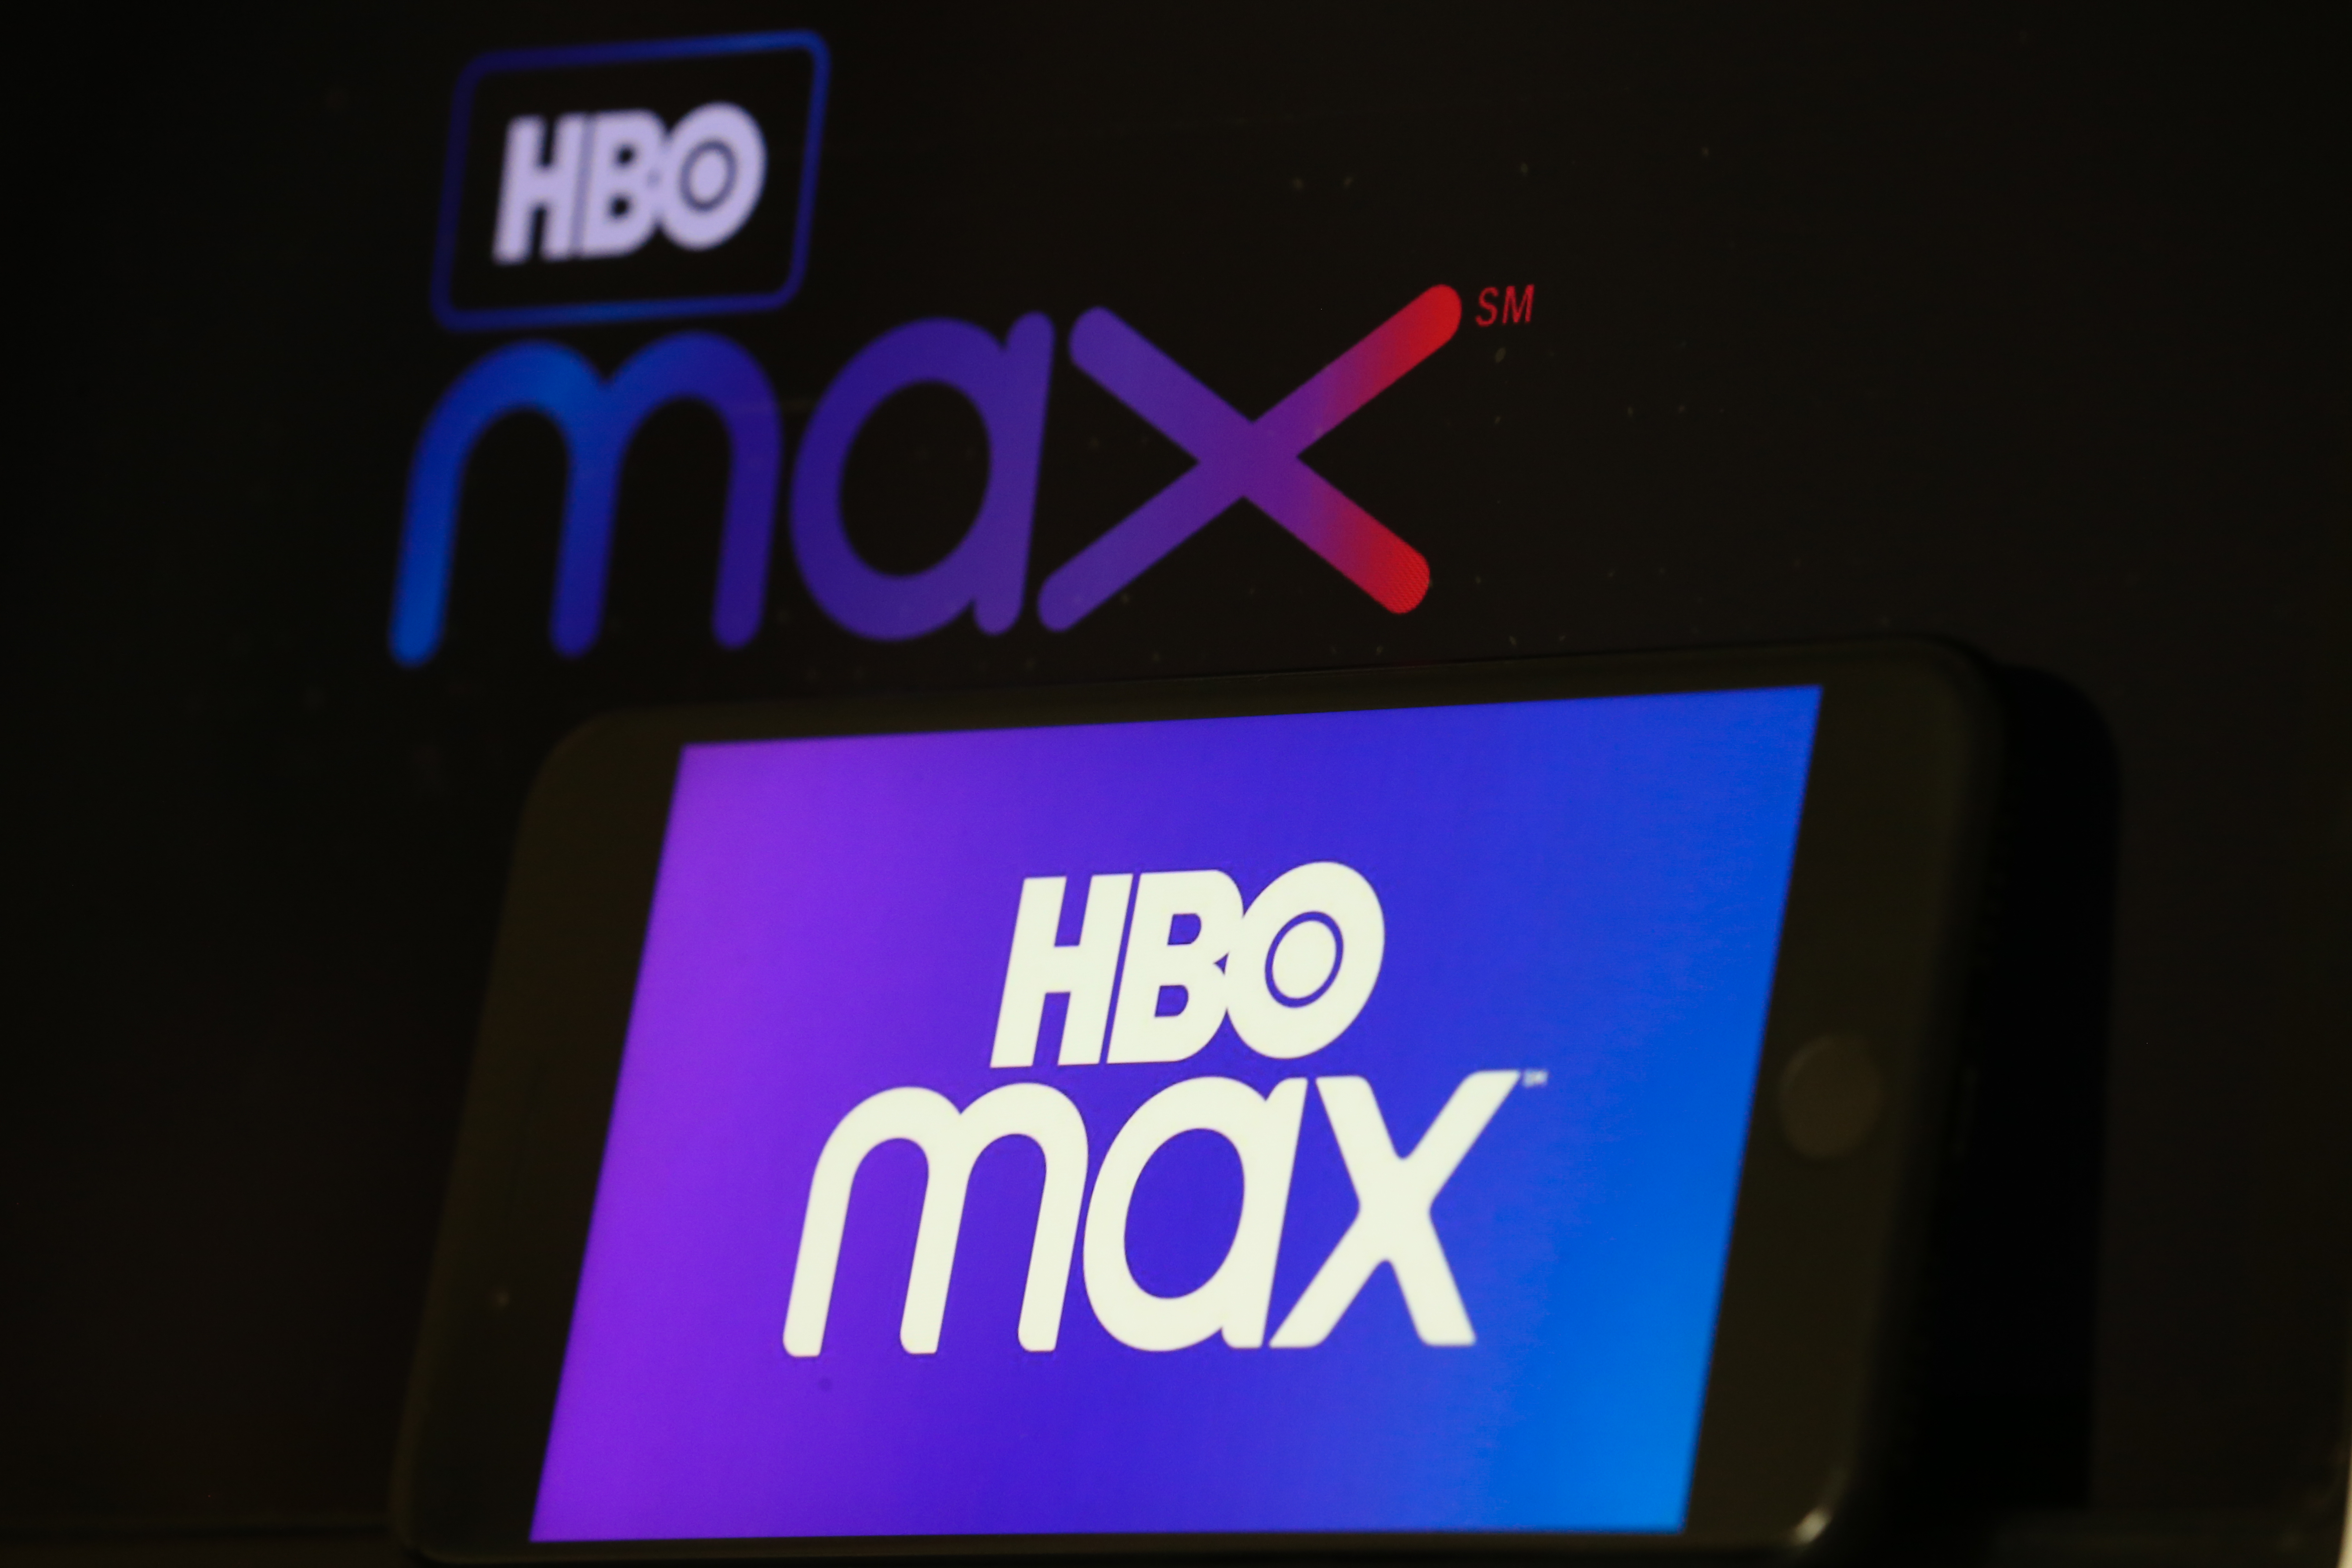 AT&T exempts HBO Max from mobile data caps